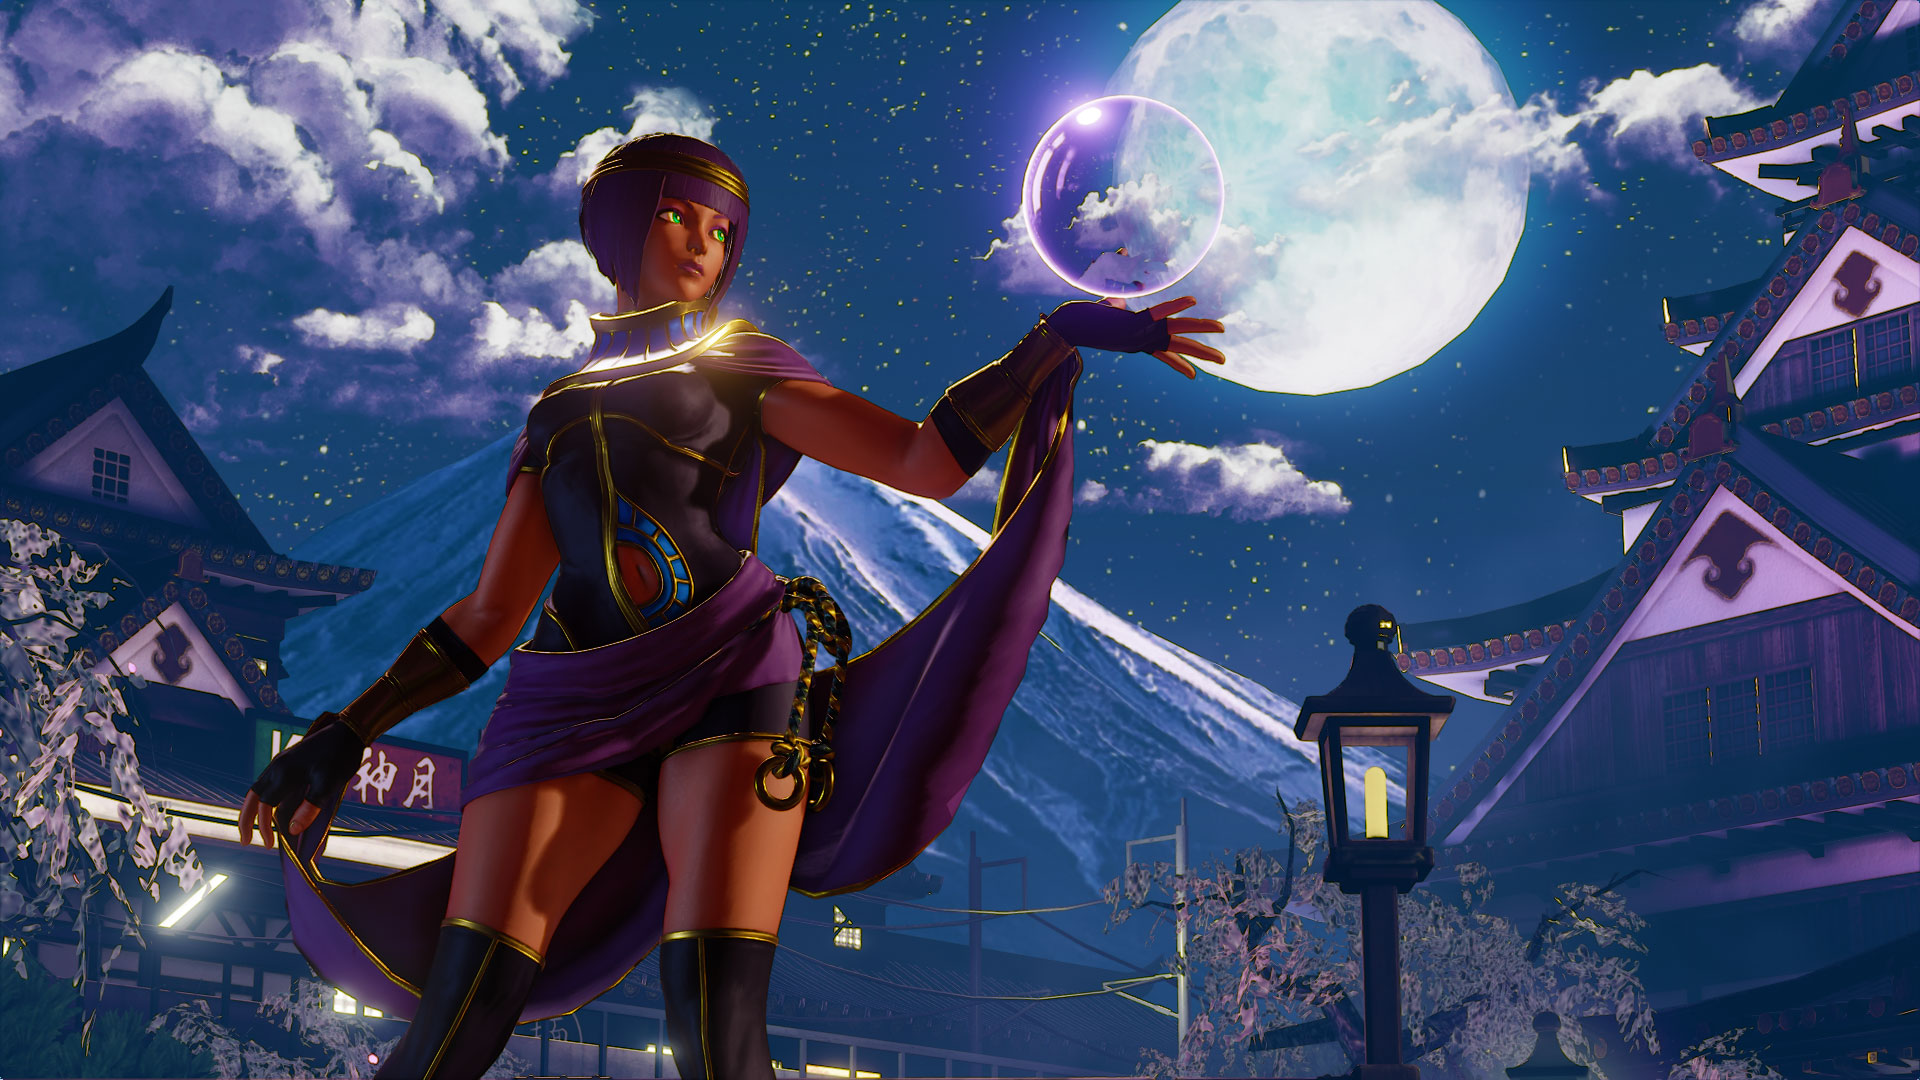 Menat Brings Mystic Orbs to Street Fighter V